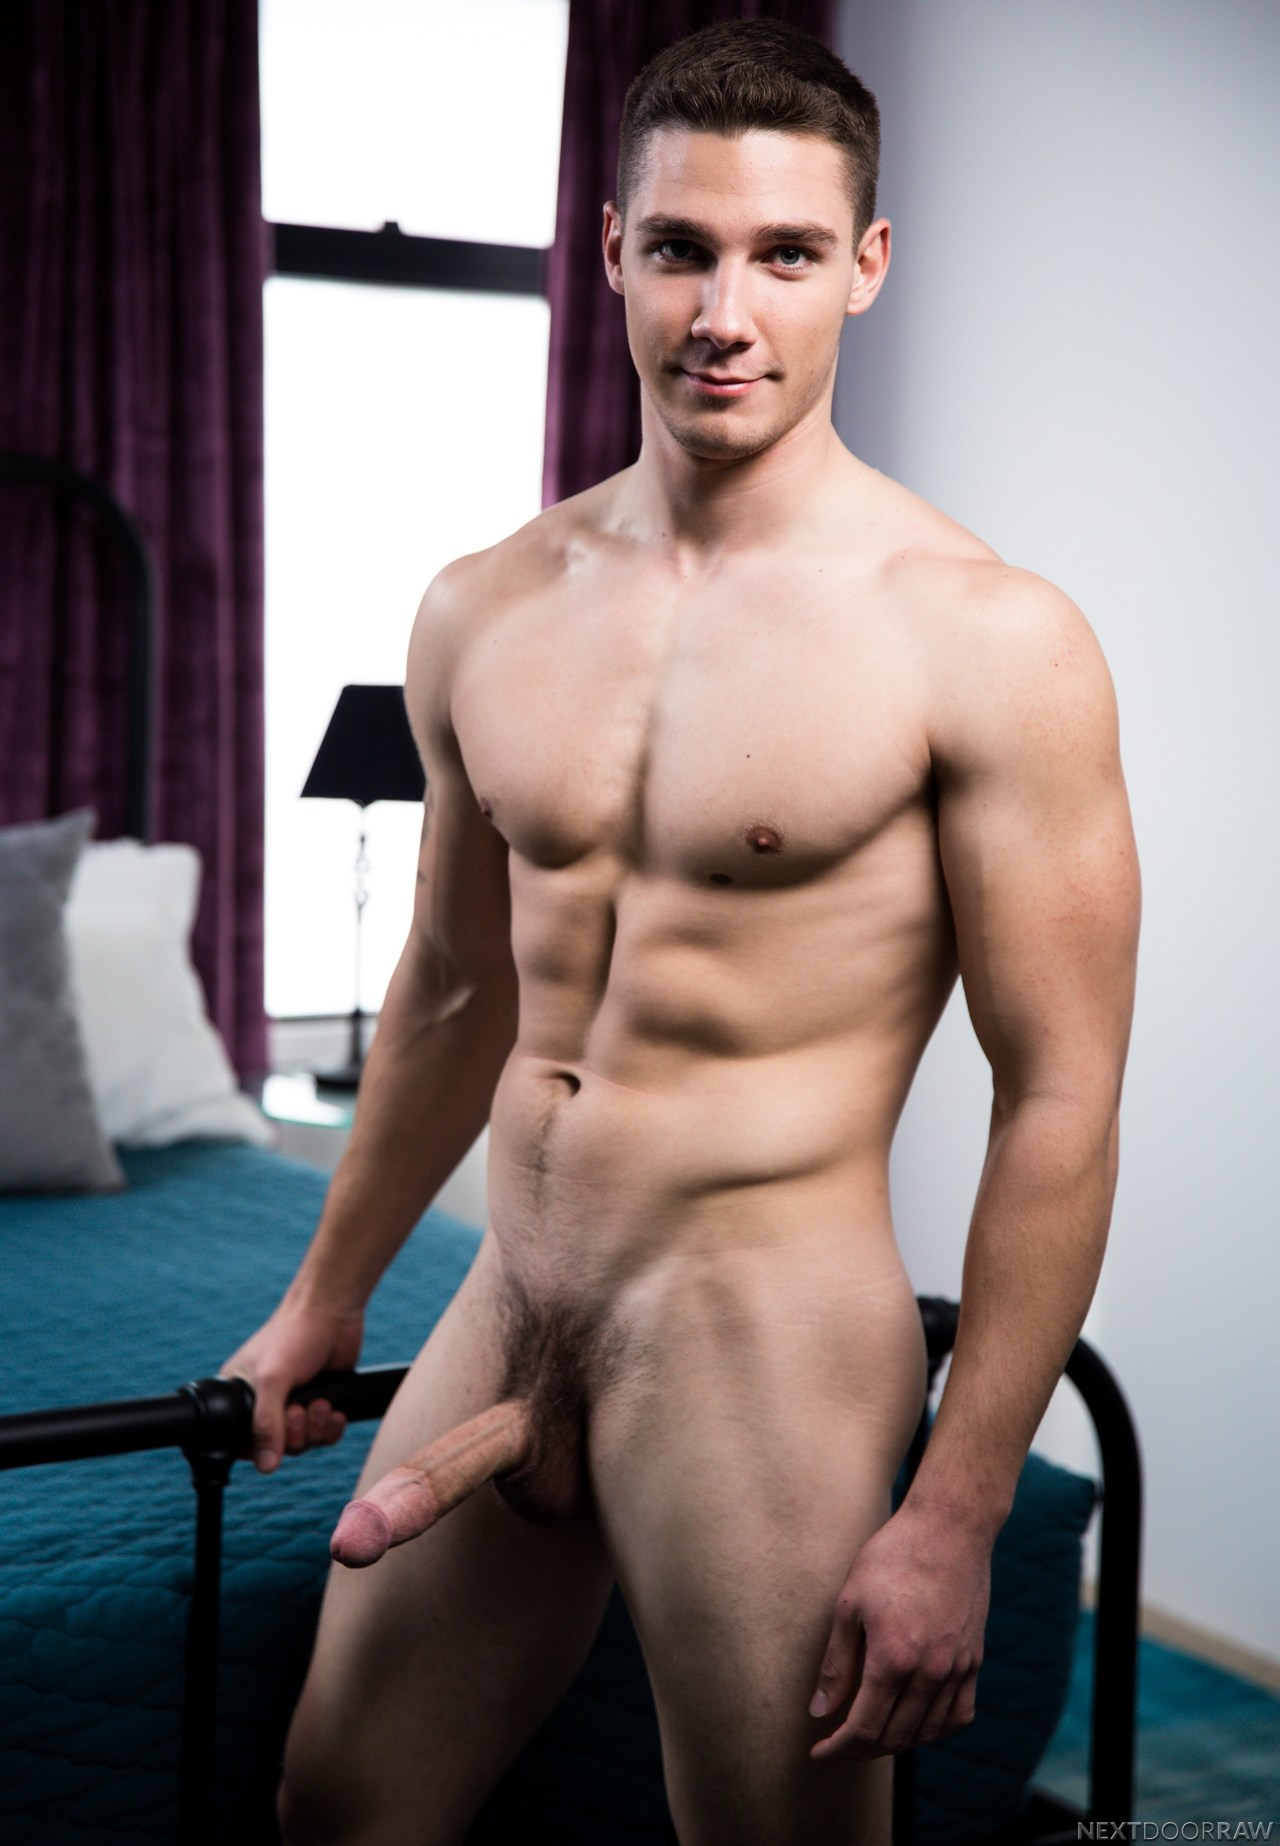 Spencer Laval Gay Porn Star Naked Big Cock Handsome